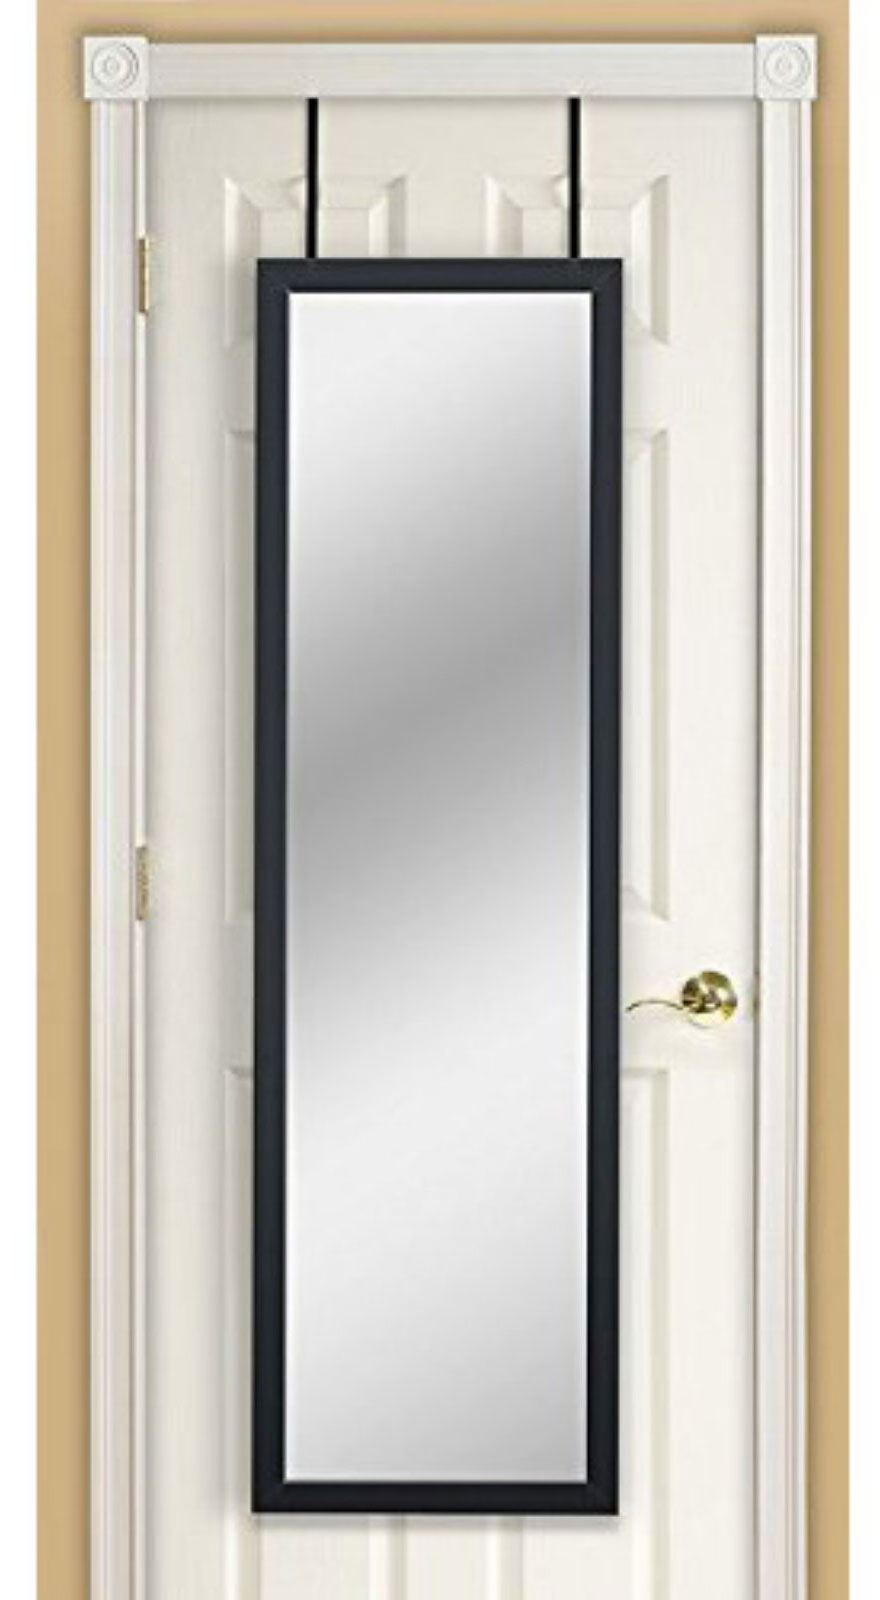 A Full Length Door Mirror